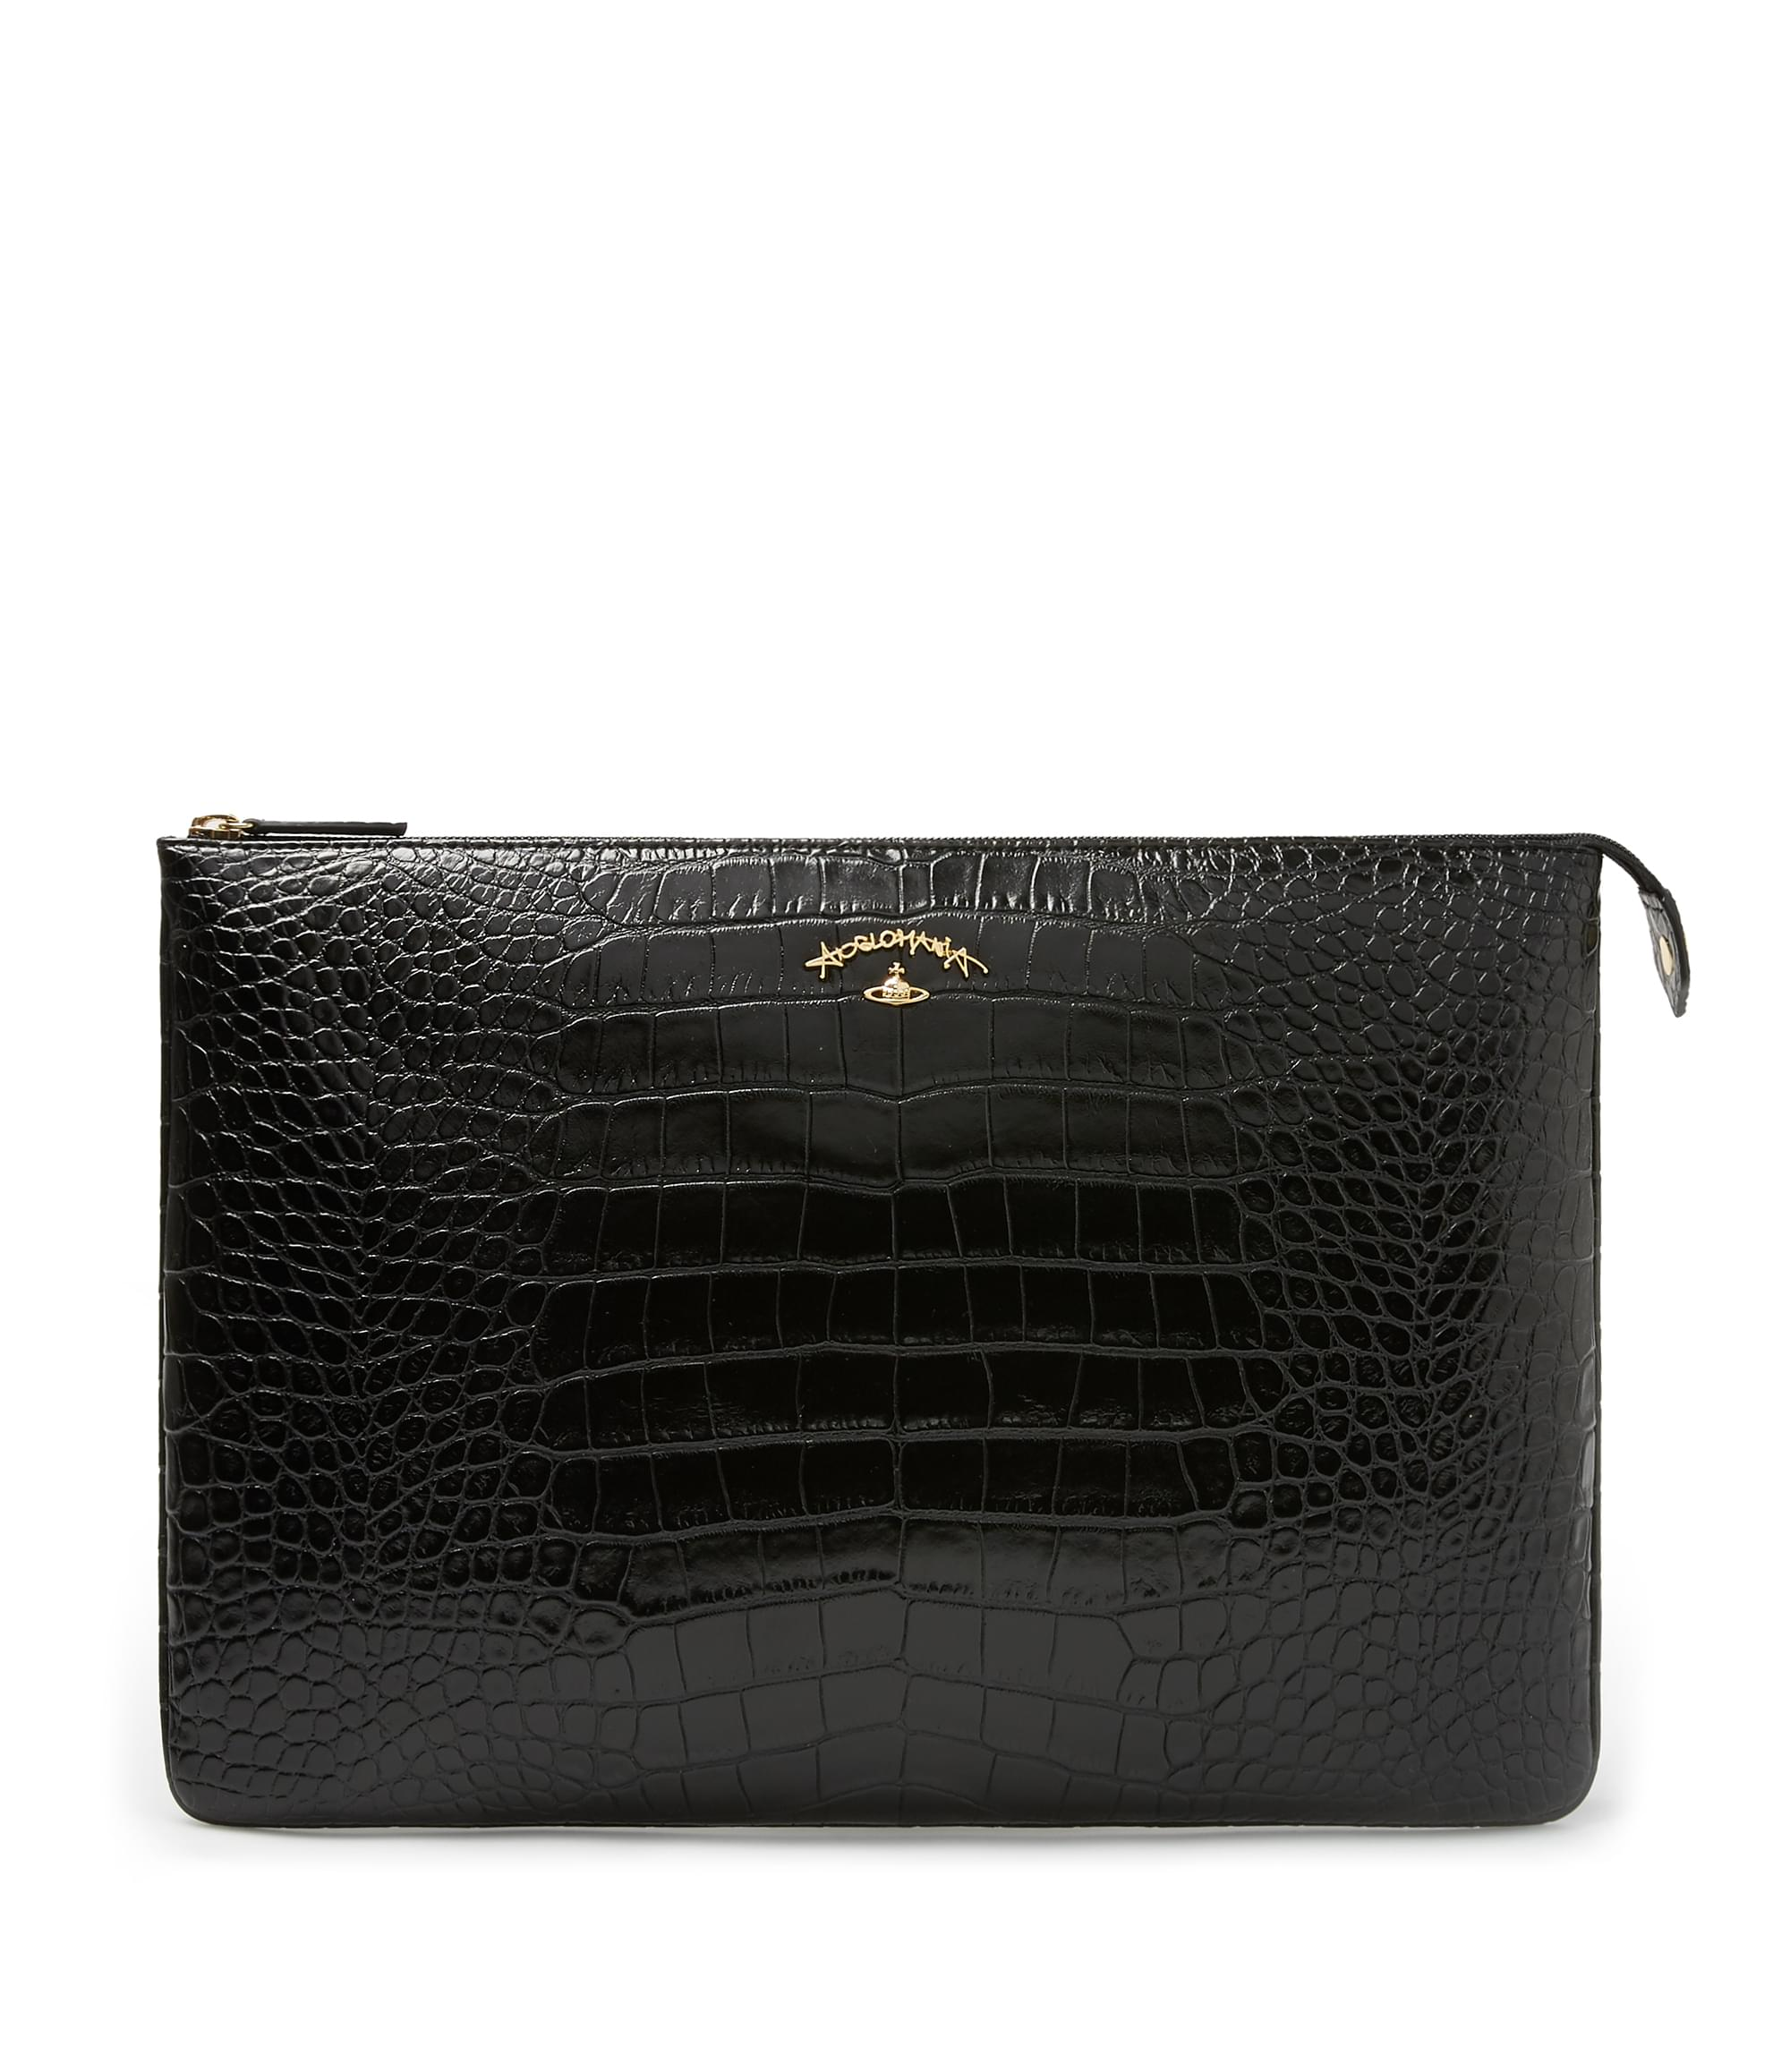 Vivienne Westwood Black Dorset Clutch Bag 6852